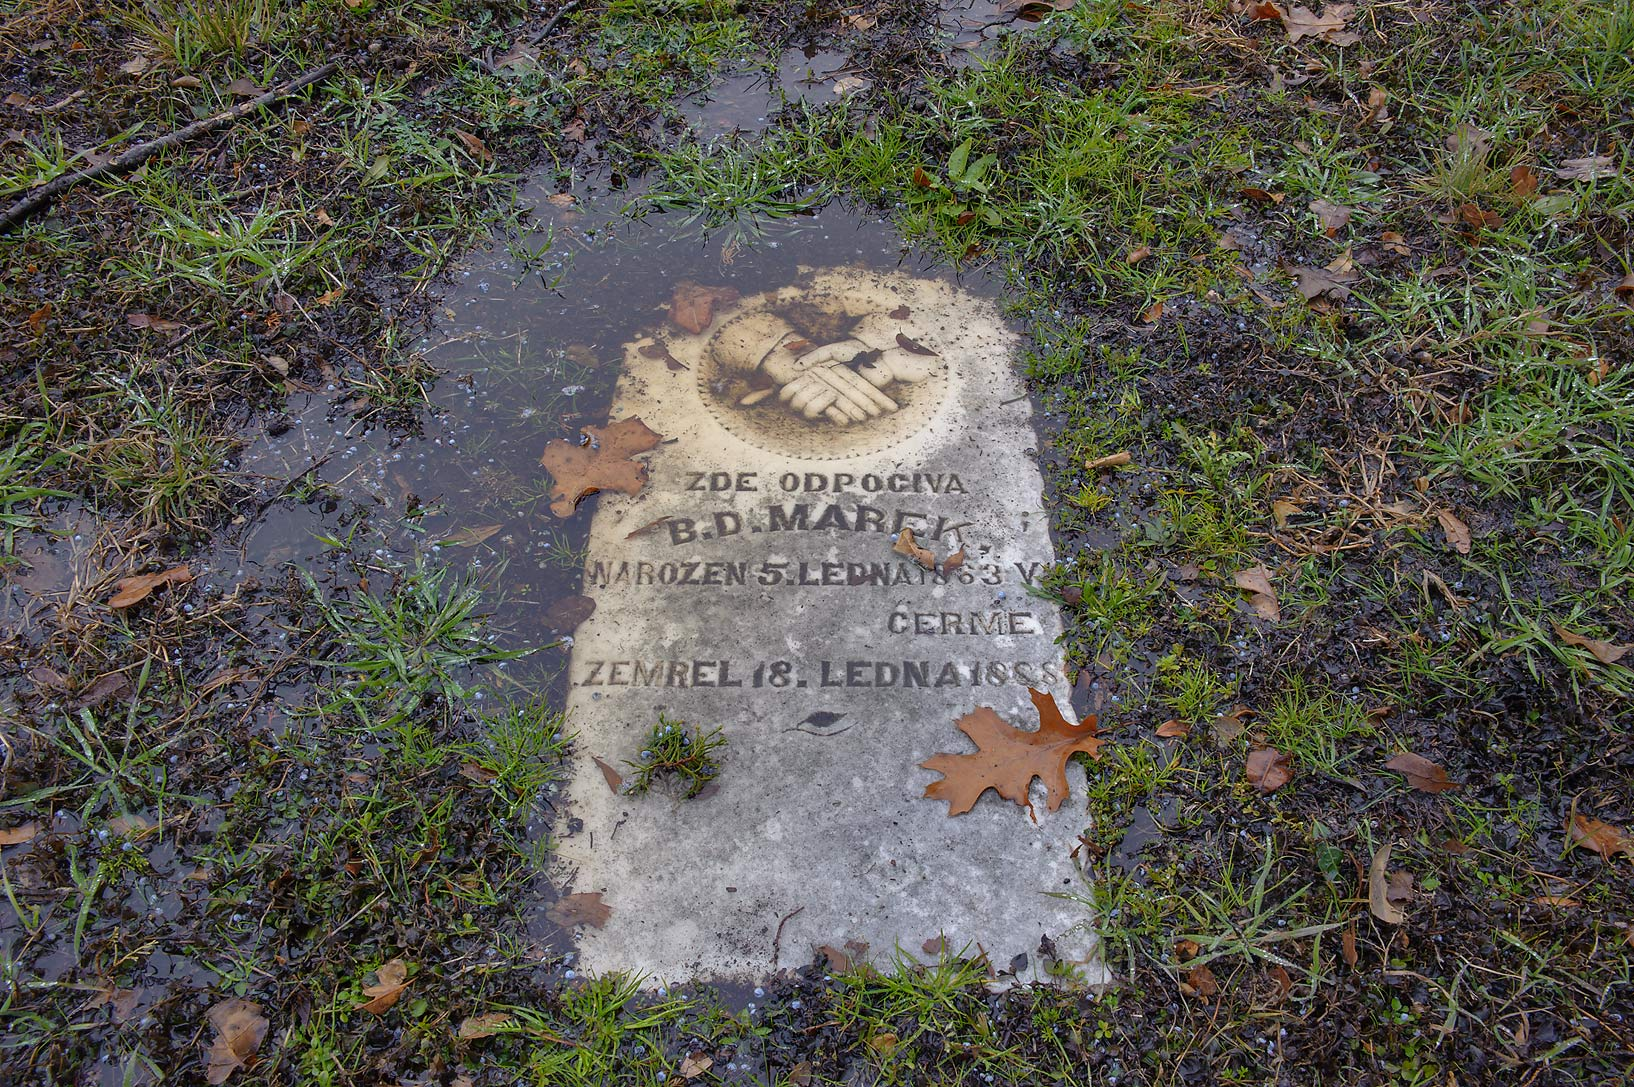 Tomb of B. D. Marek in College Station Cemetery at rain. College Station, Texas